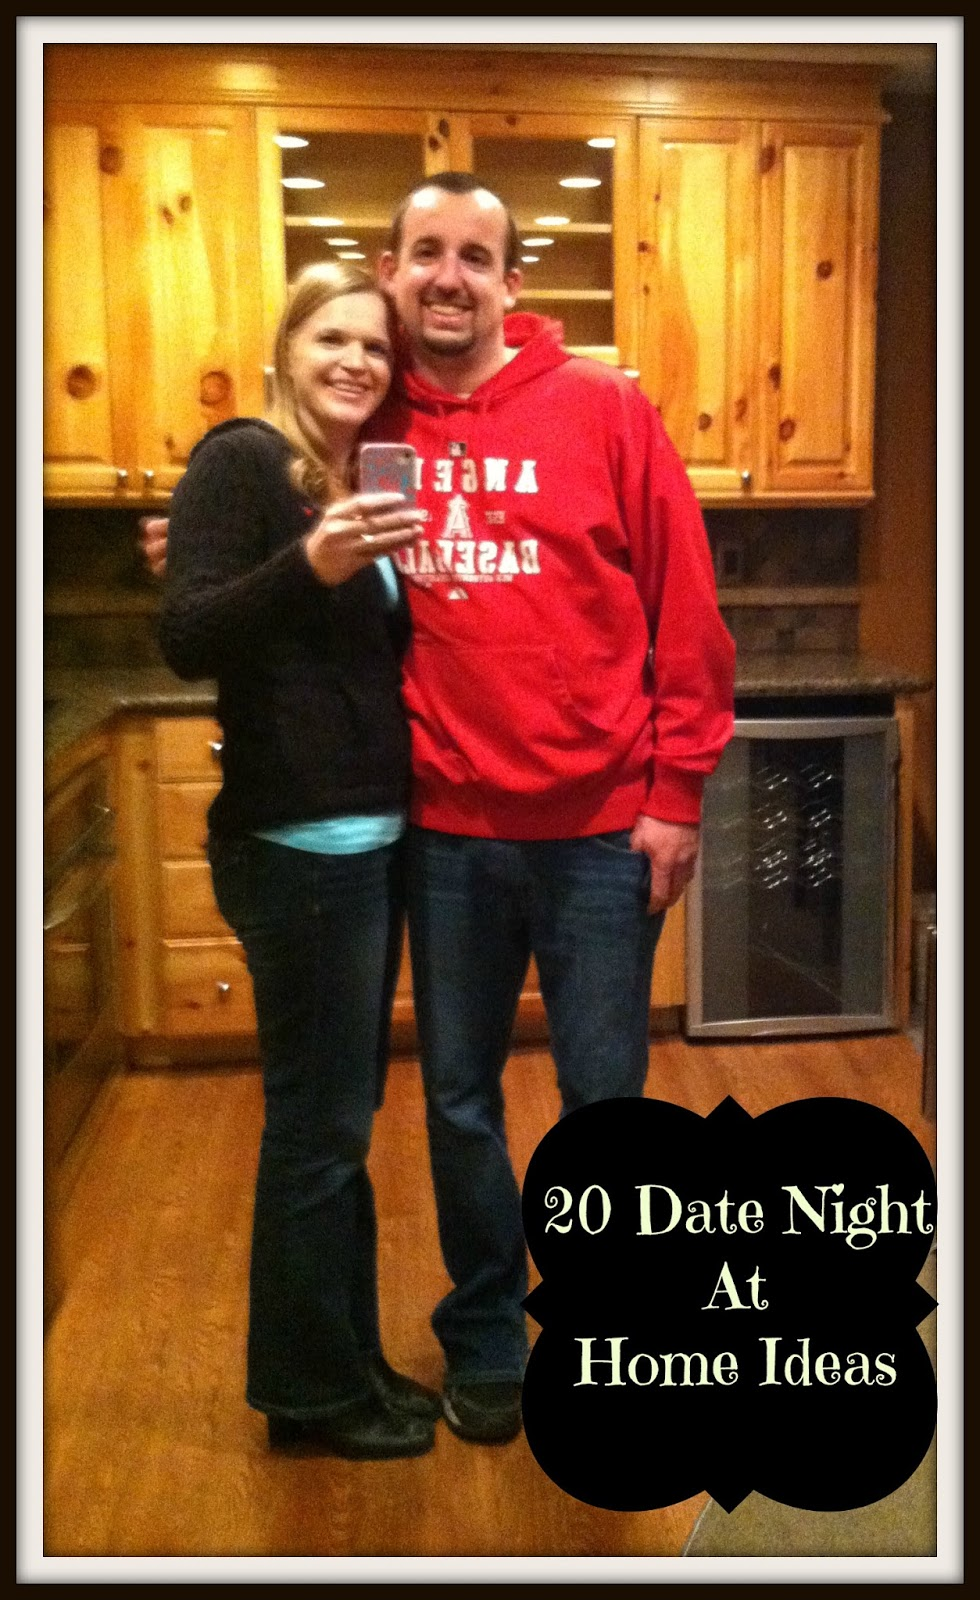 twingle mommmy 20 date night at home ideas